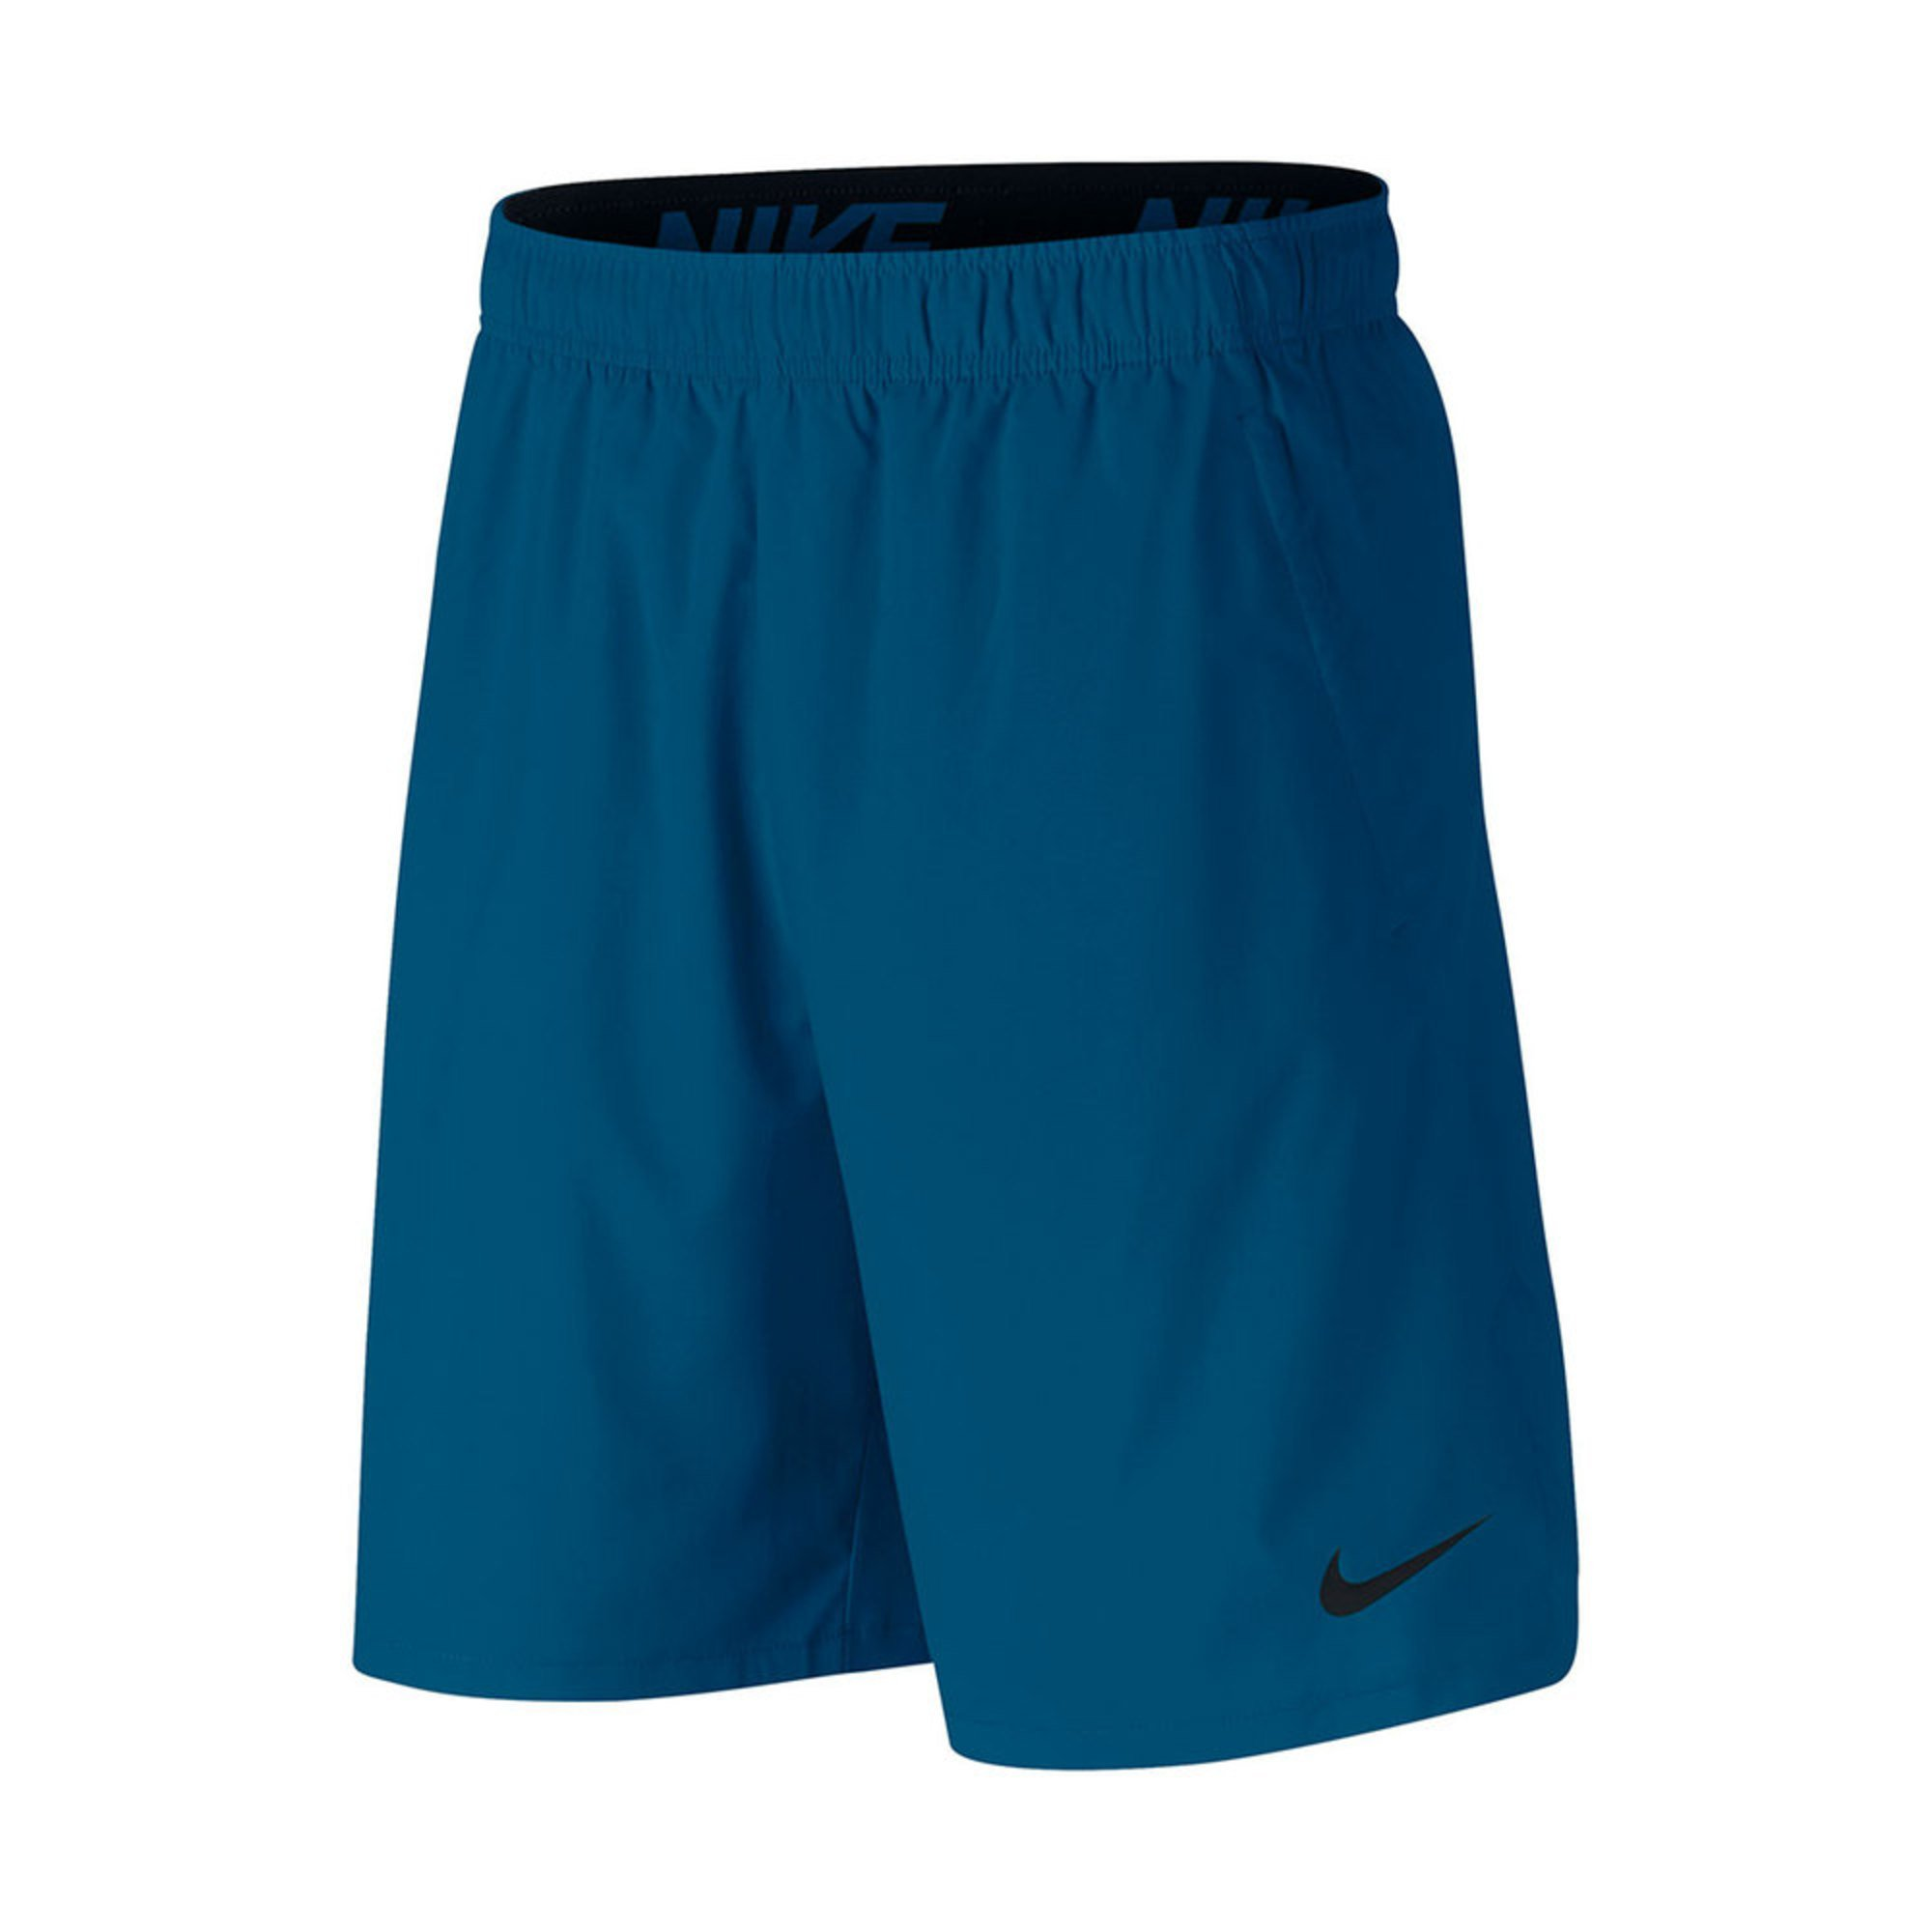 ee089cea917d Nike. Nike Men s Training Flex Woven 2.0 Shorts